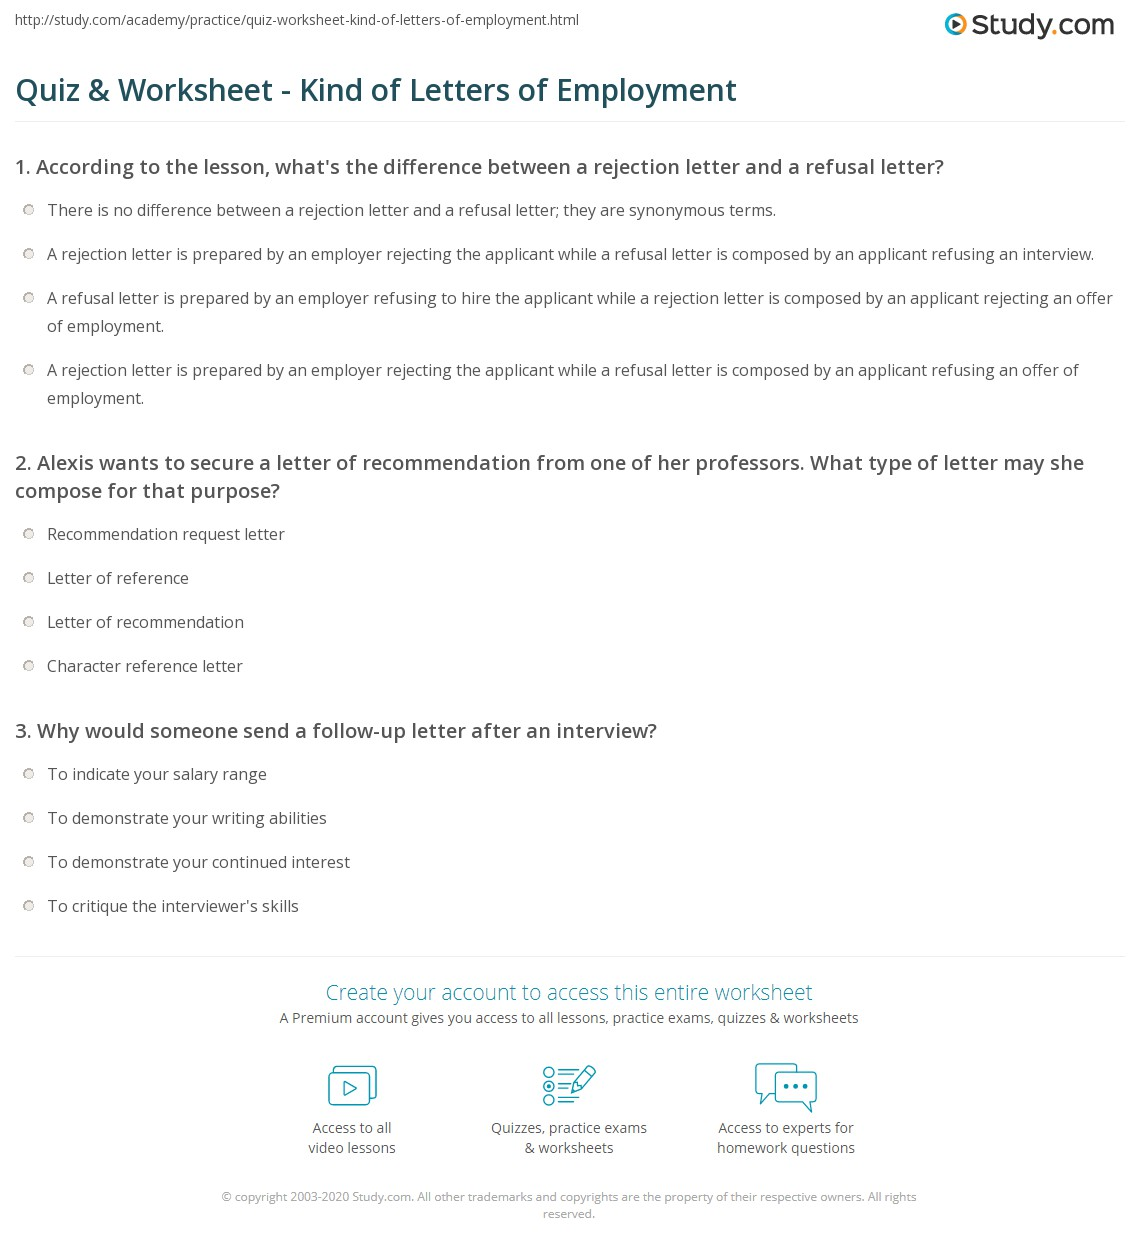 Quiz Worksheet Kind Of Letters Of Employment Study Com